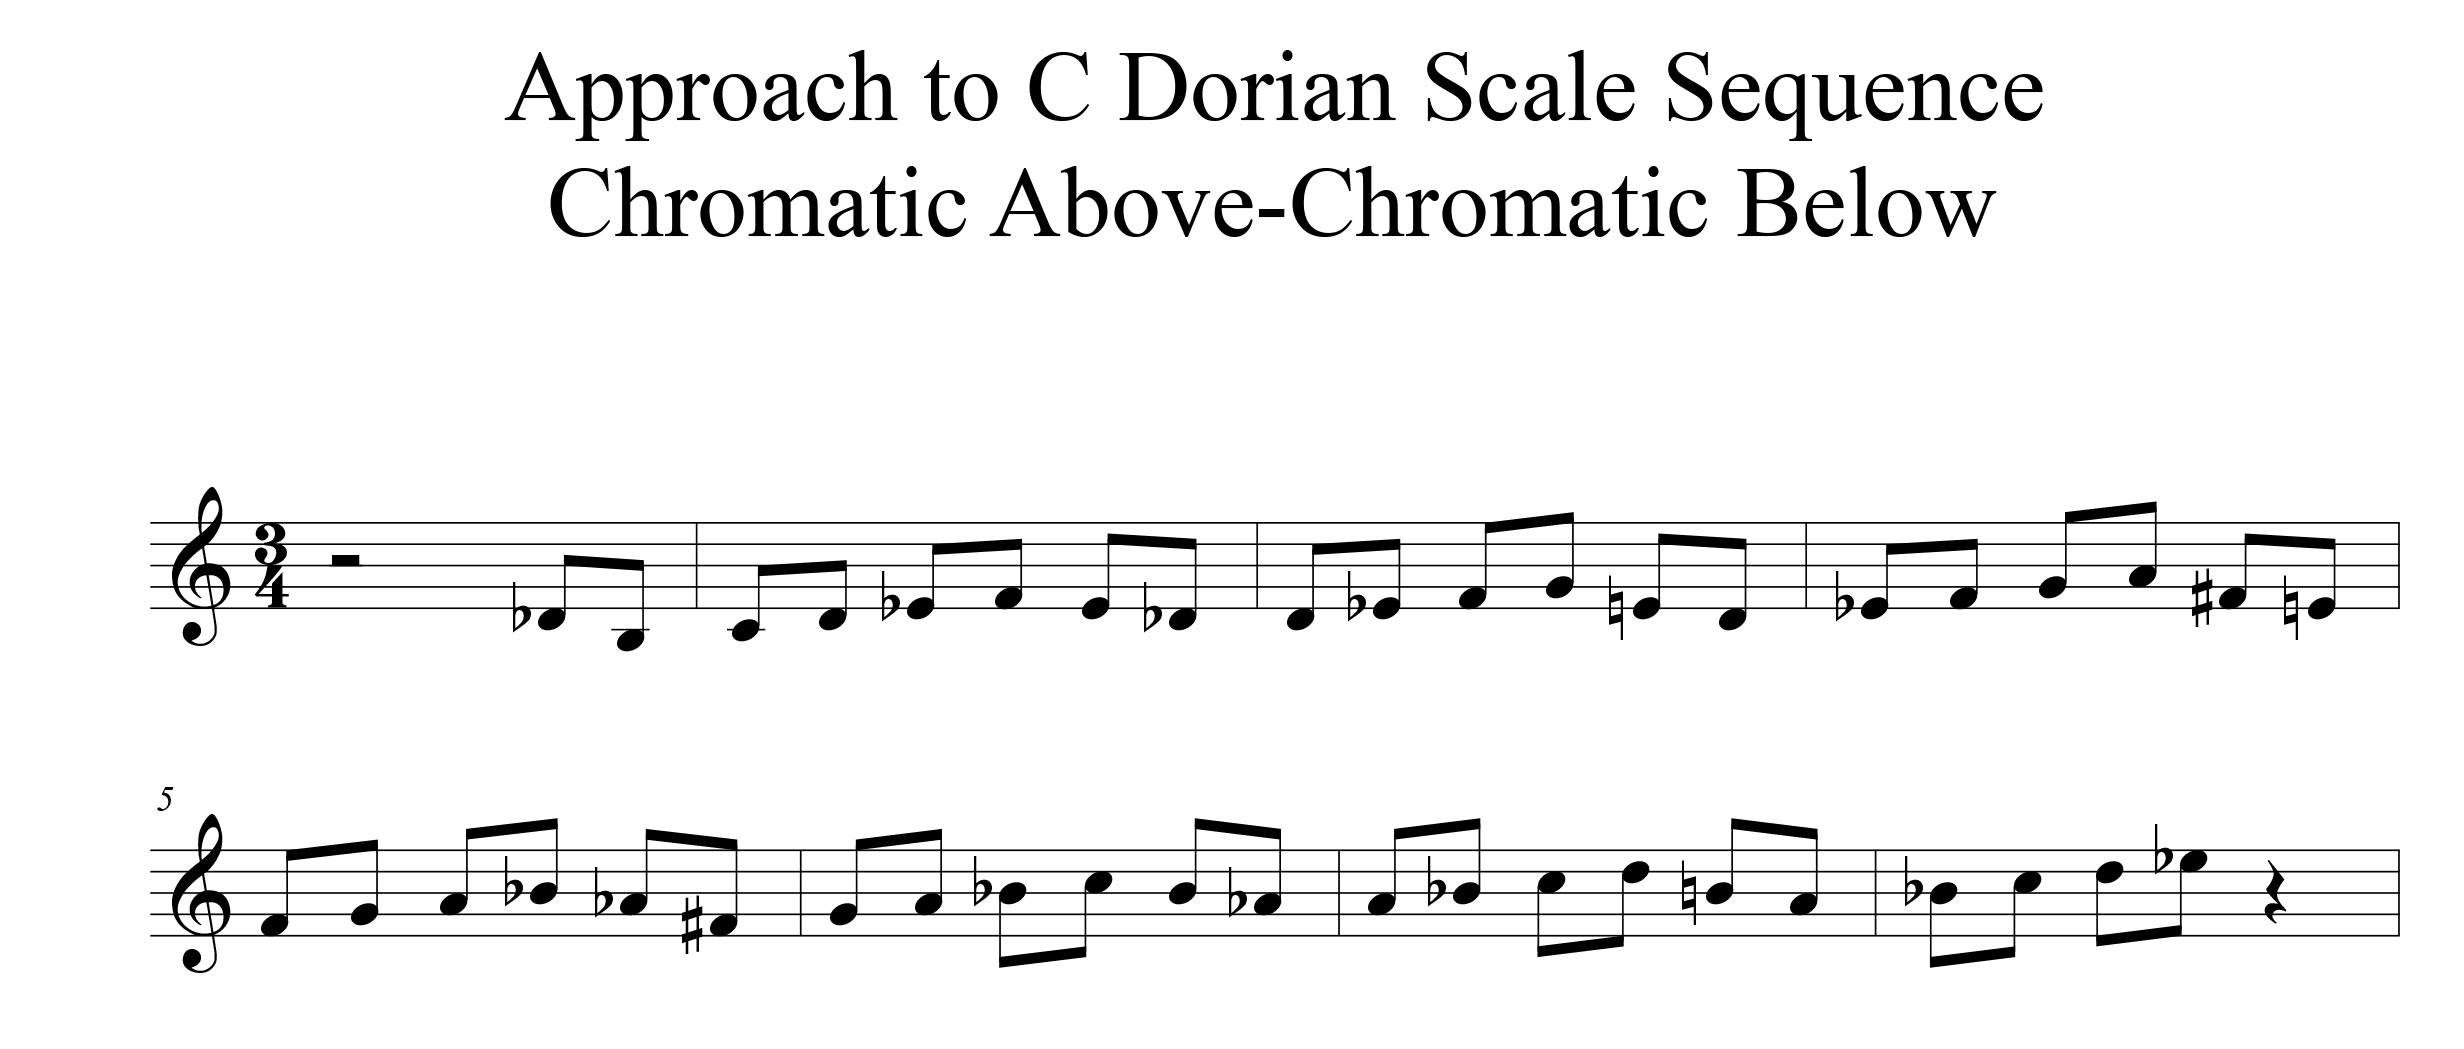 01-Approach-To-C-Dorian-Scale-Melodic-Modulation-by-bruce-arnold-for-muse-eek-publishing-inc.